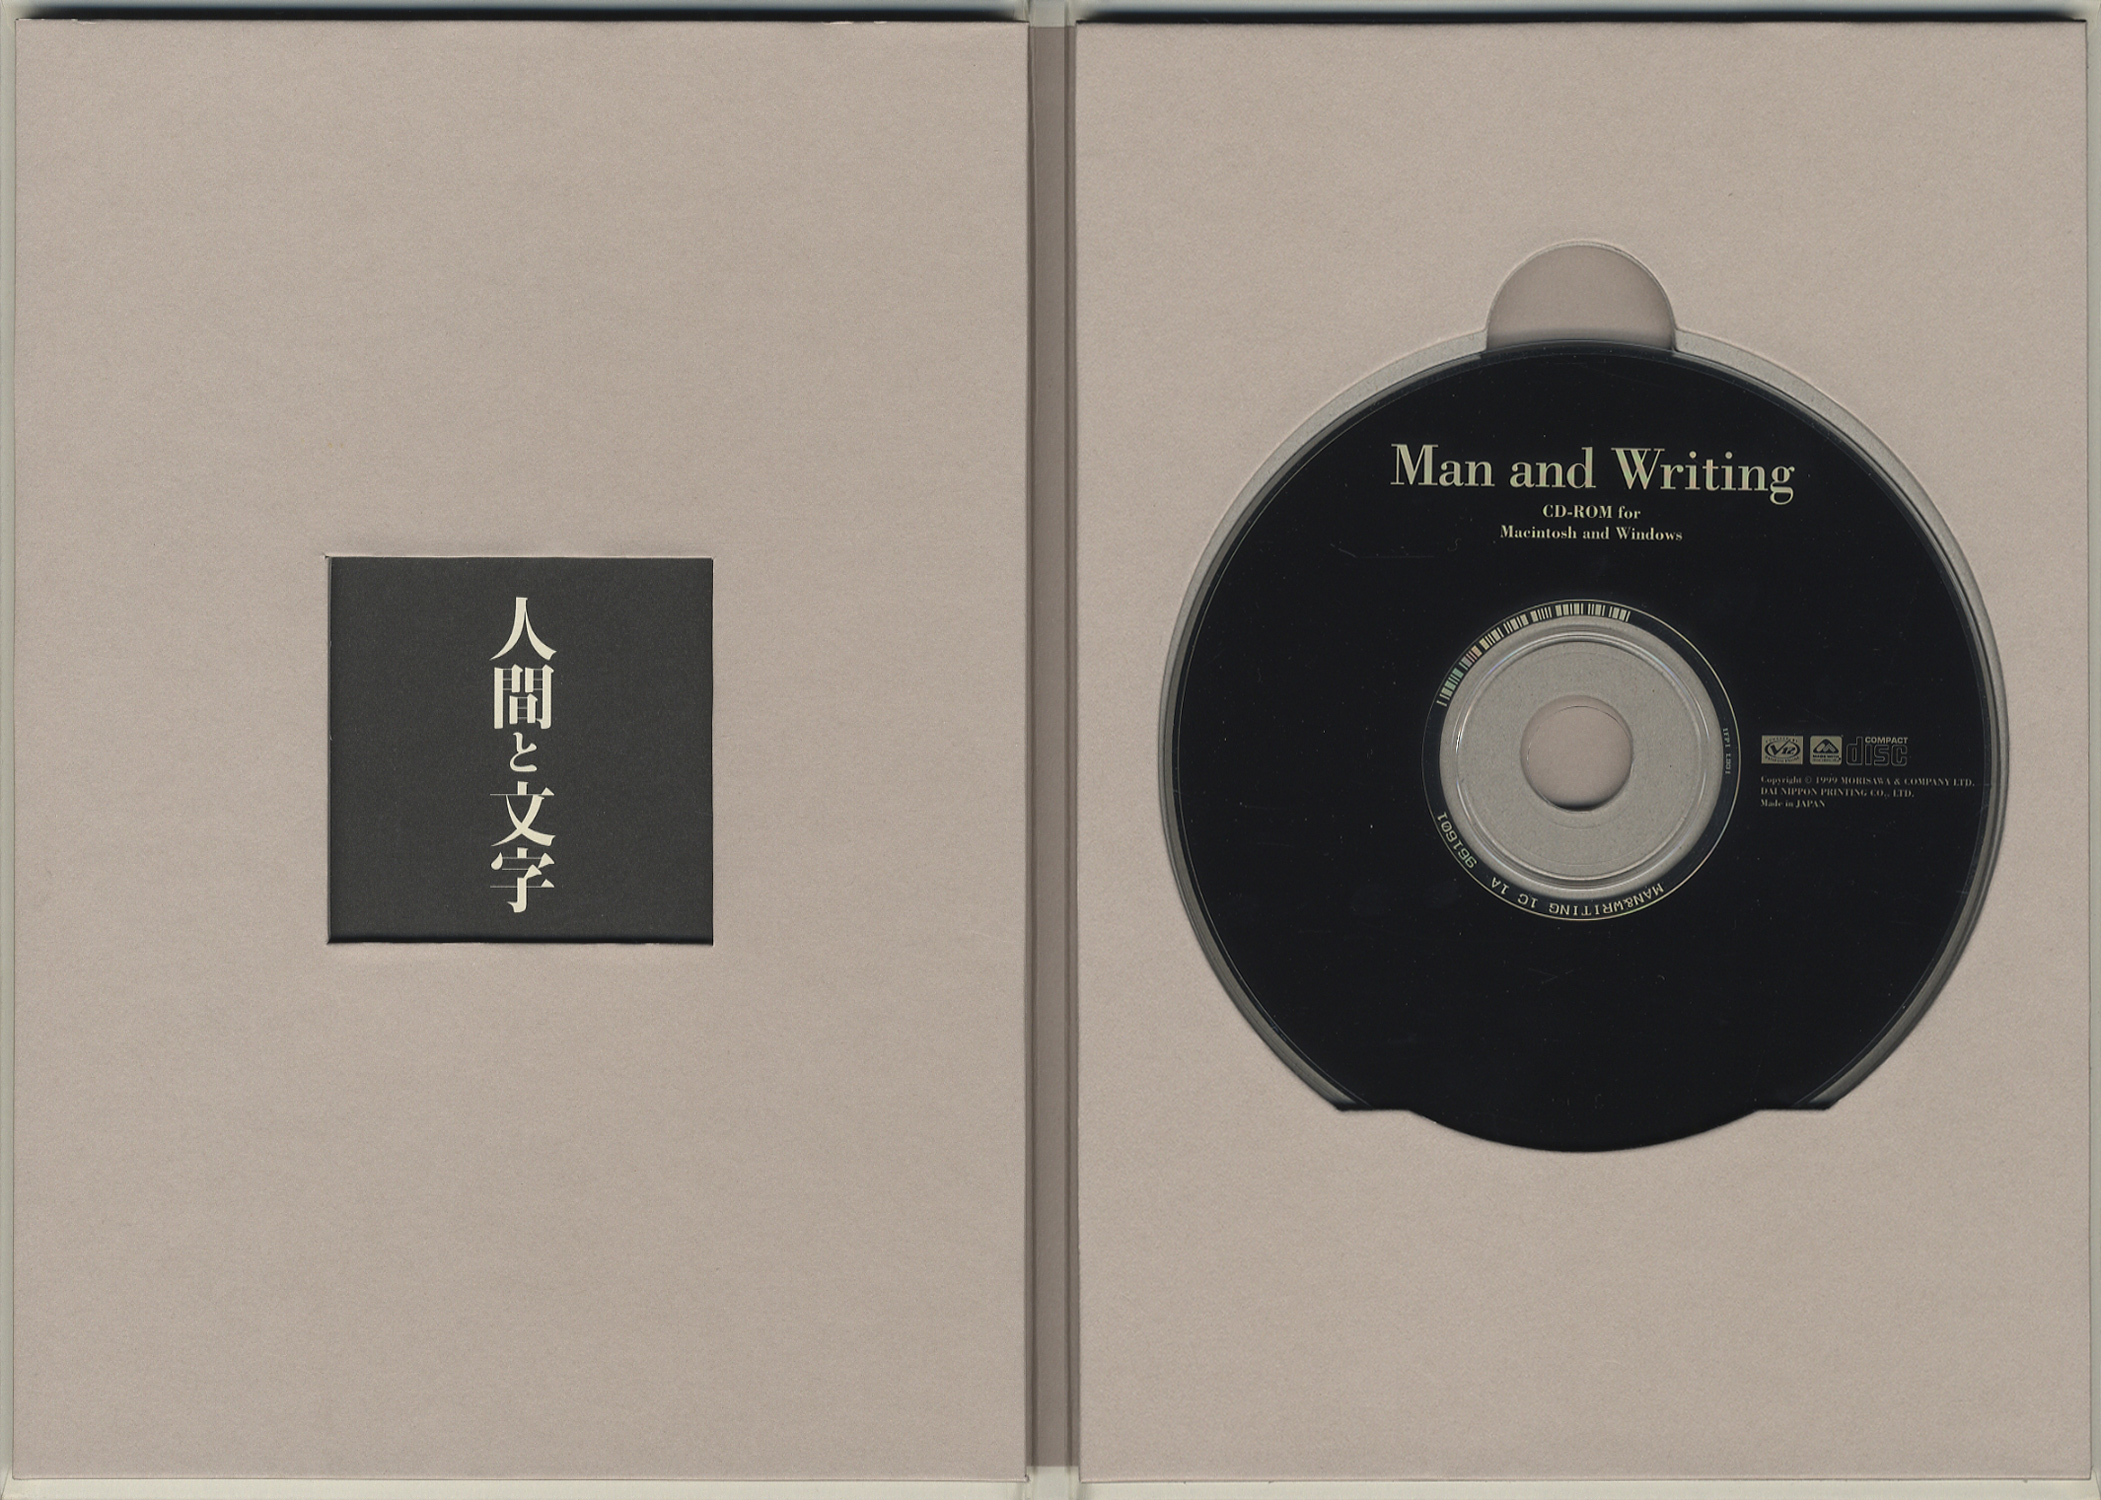 人間と文字 Man and Writing CD-ROM for Macintosh and Windows[image3]